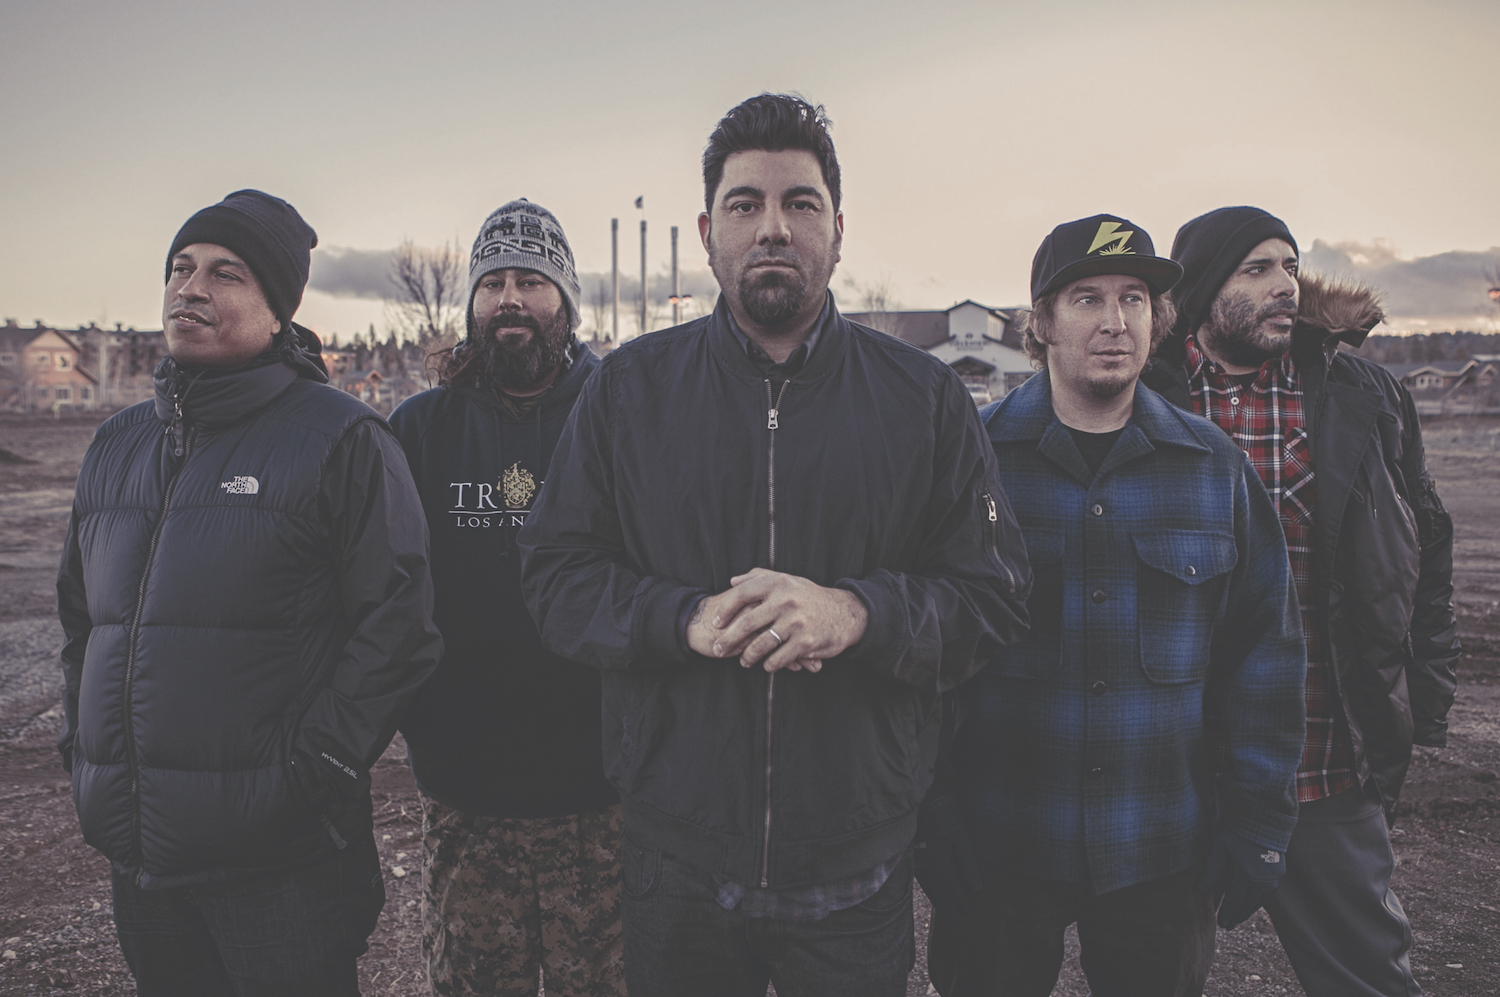 Deftones 10 Most Anticipated Metal Albums of 2019